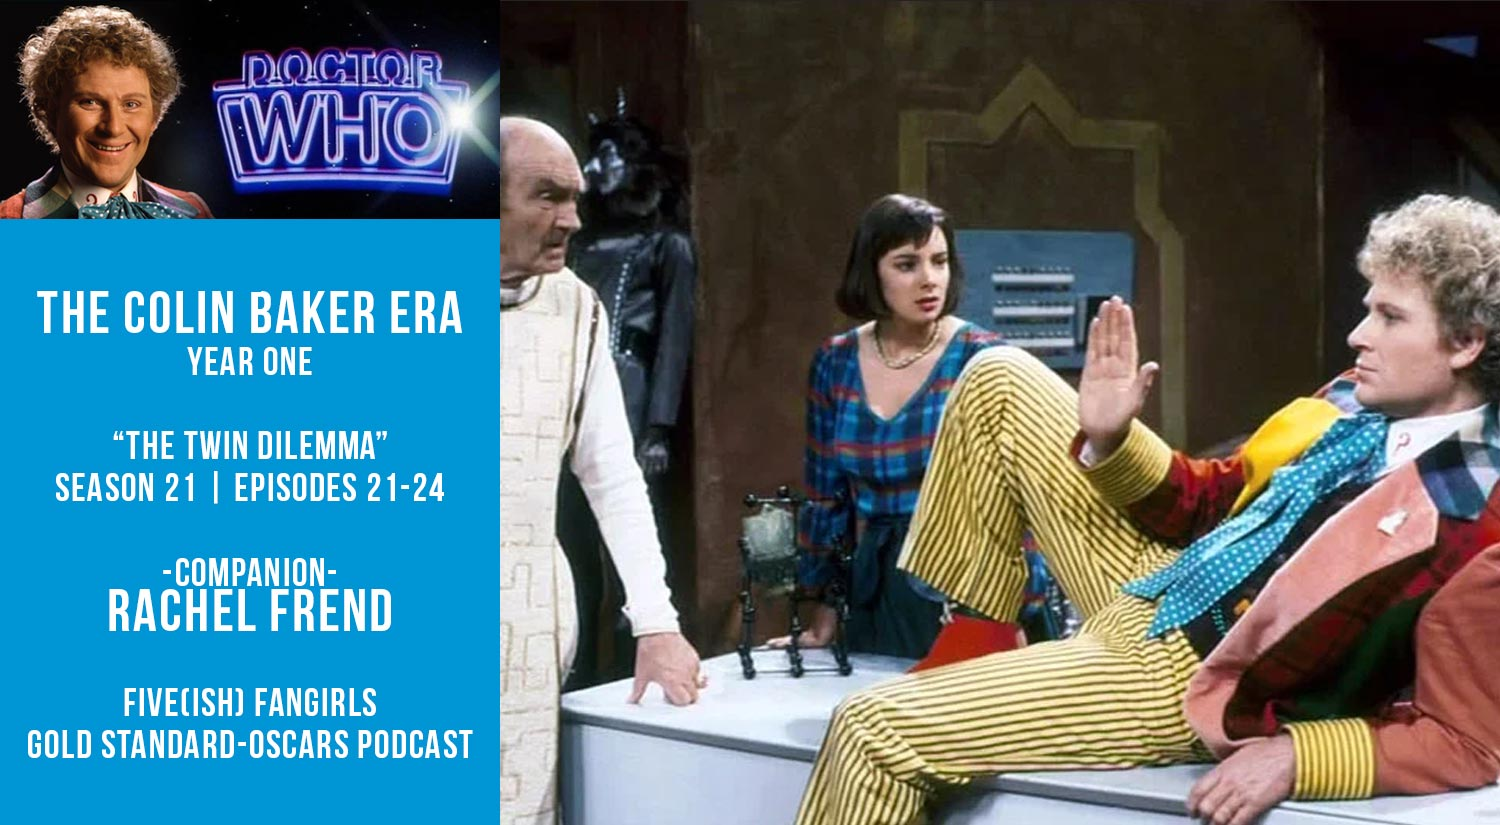 Old Space Show: Doctor Who: The Twin Dilemma